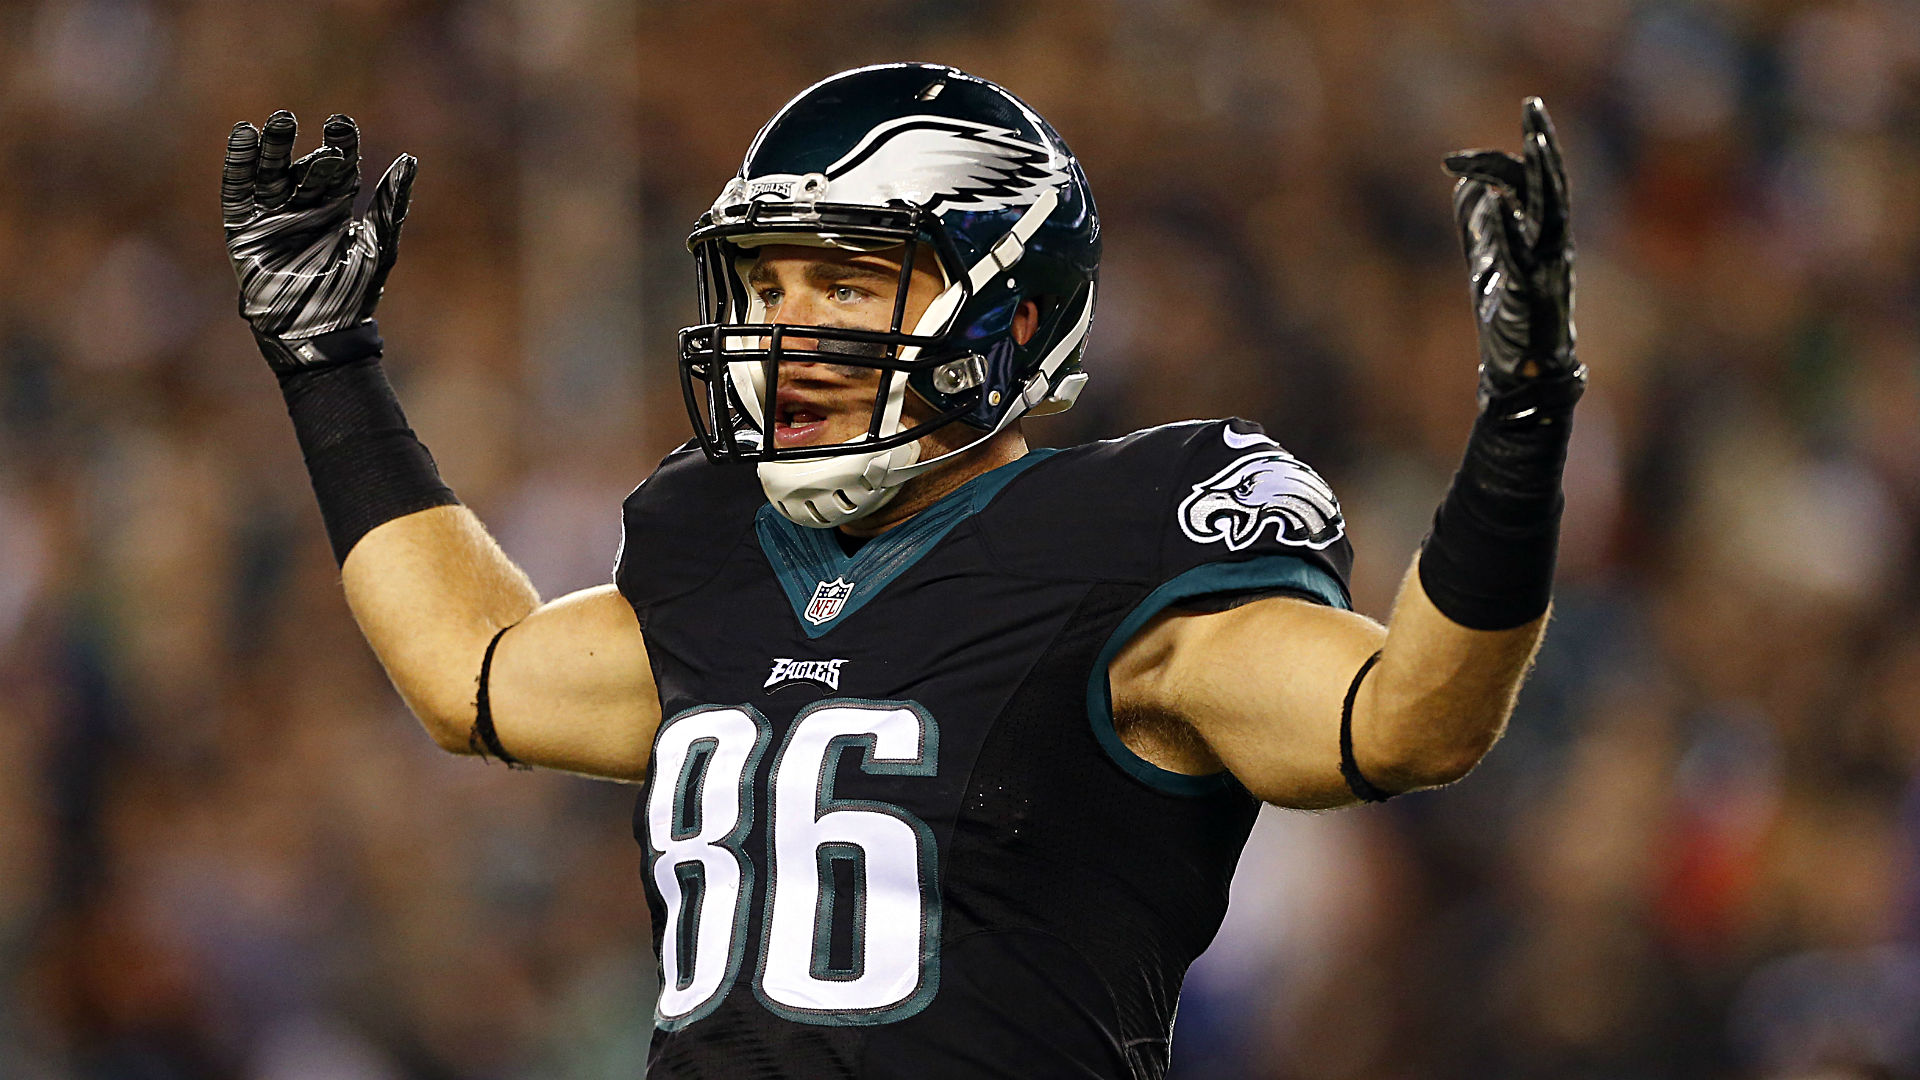 Eagles TE Ertz signs five-year extension